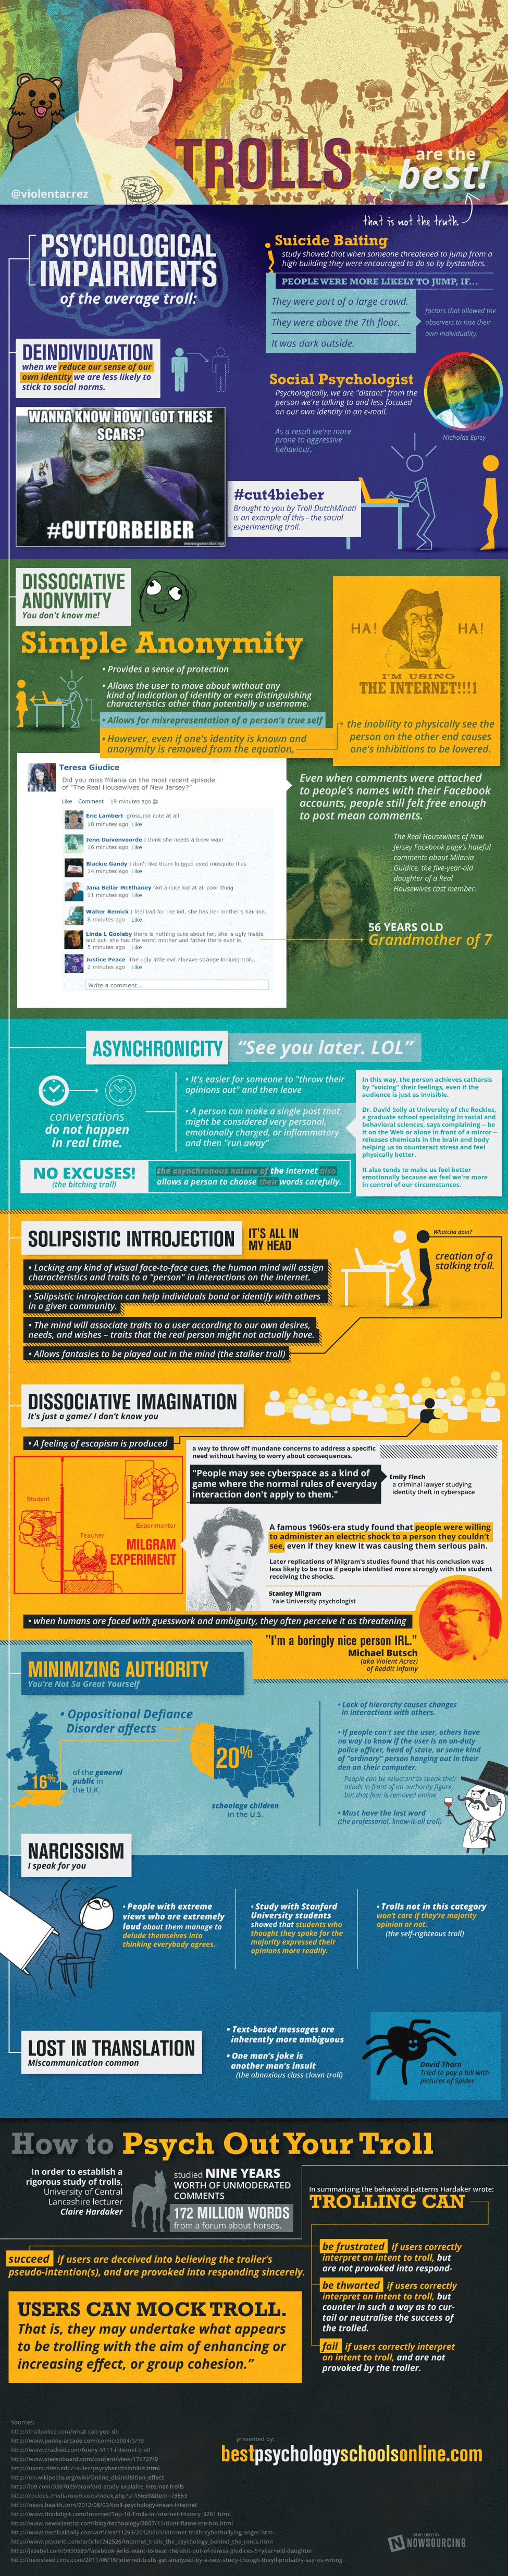 The Psychology Behind An Internet Troll [Infographic]